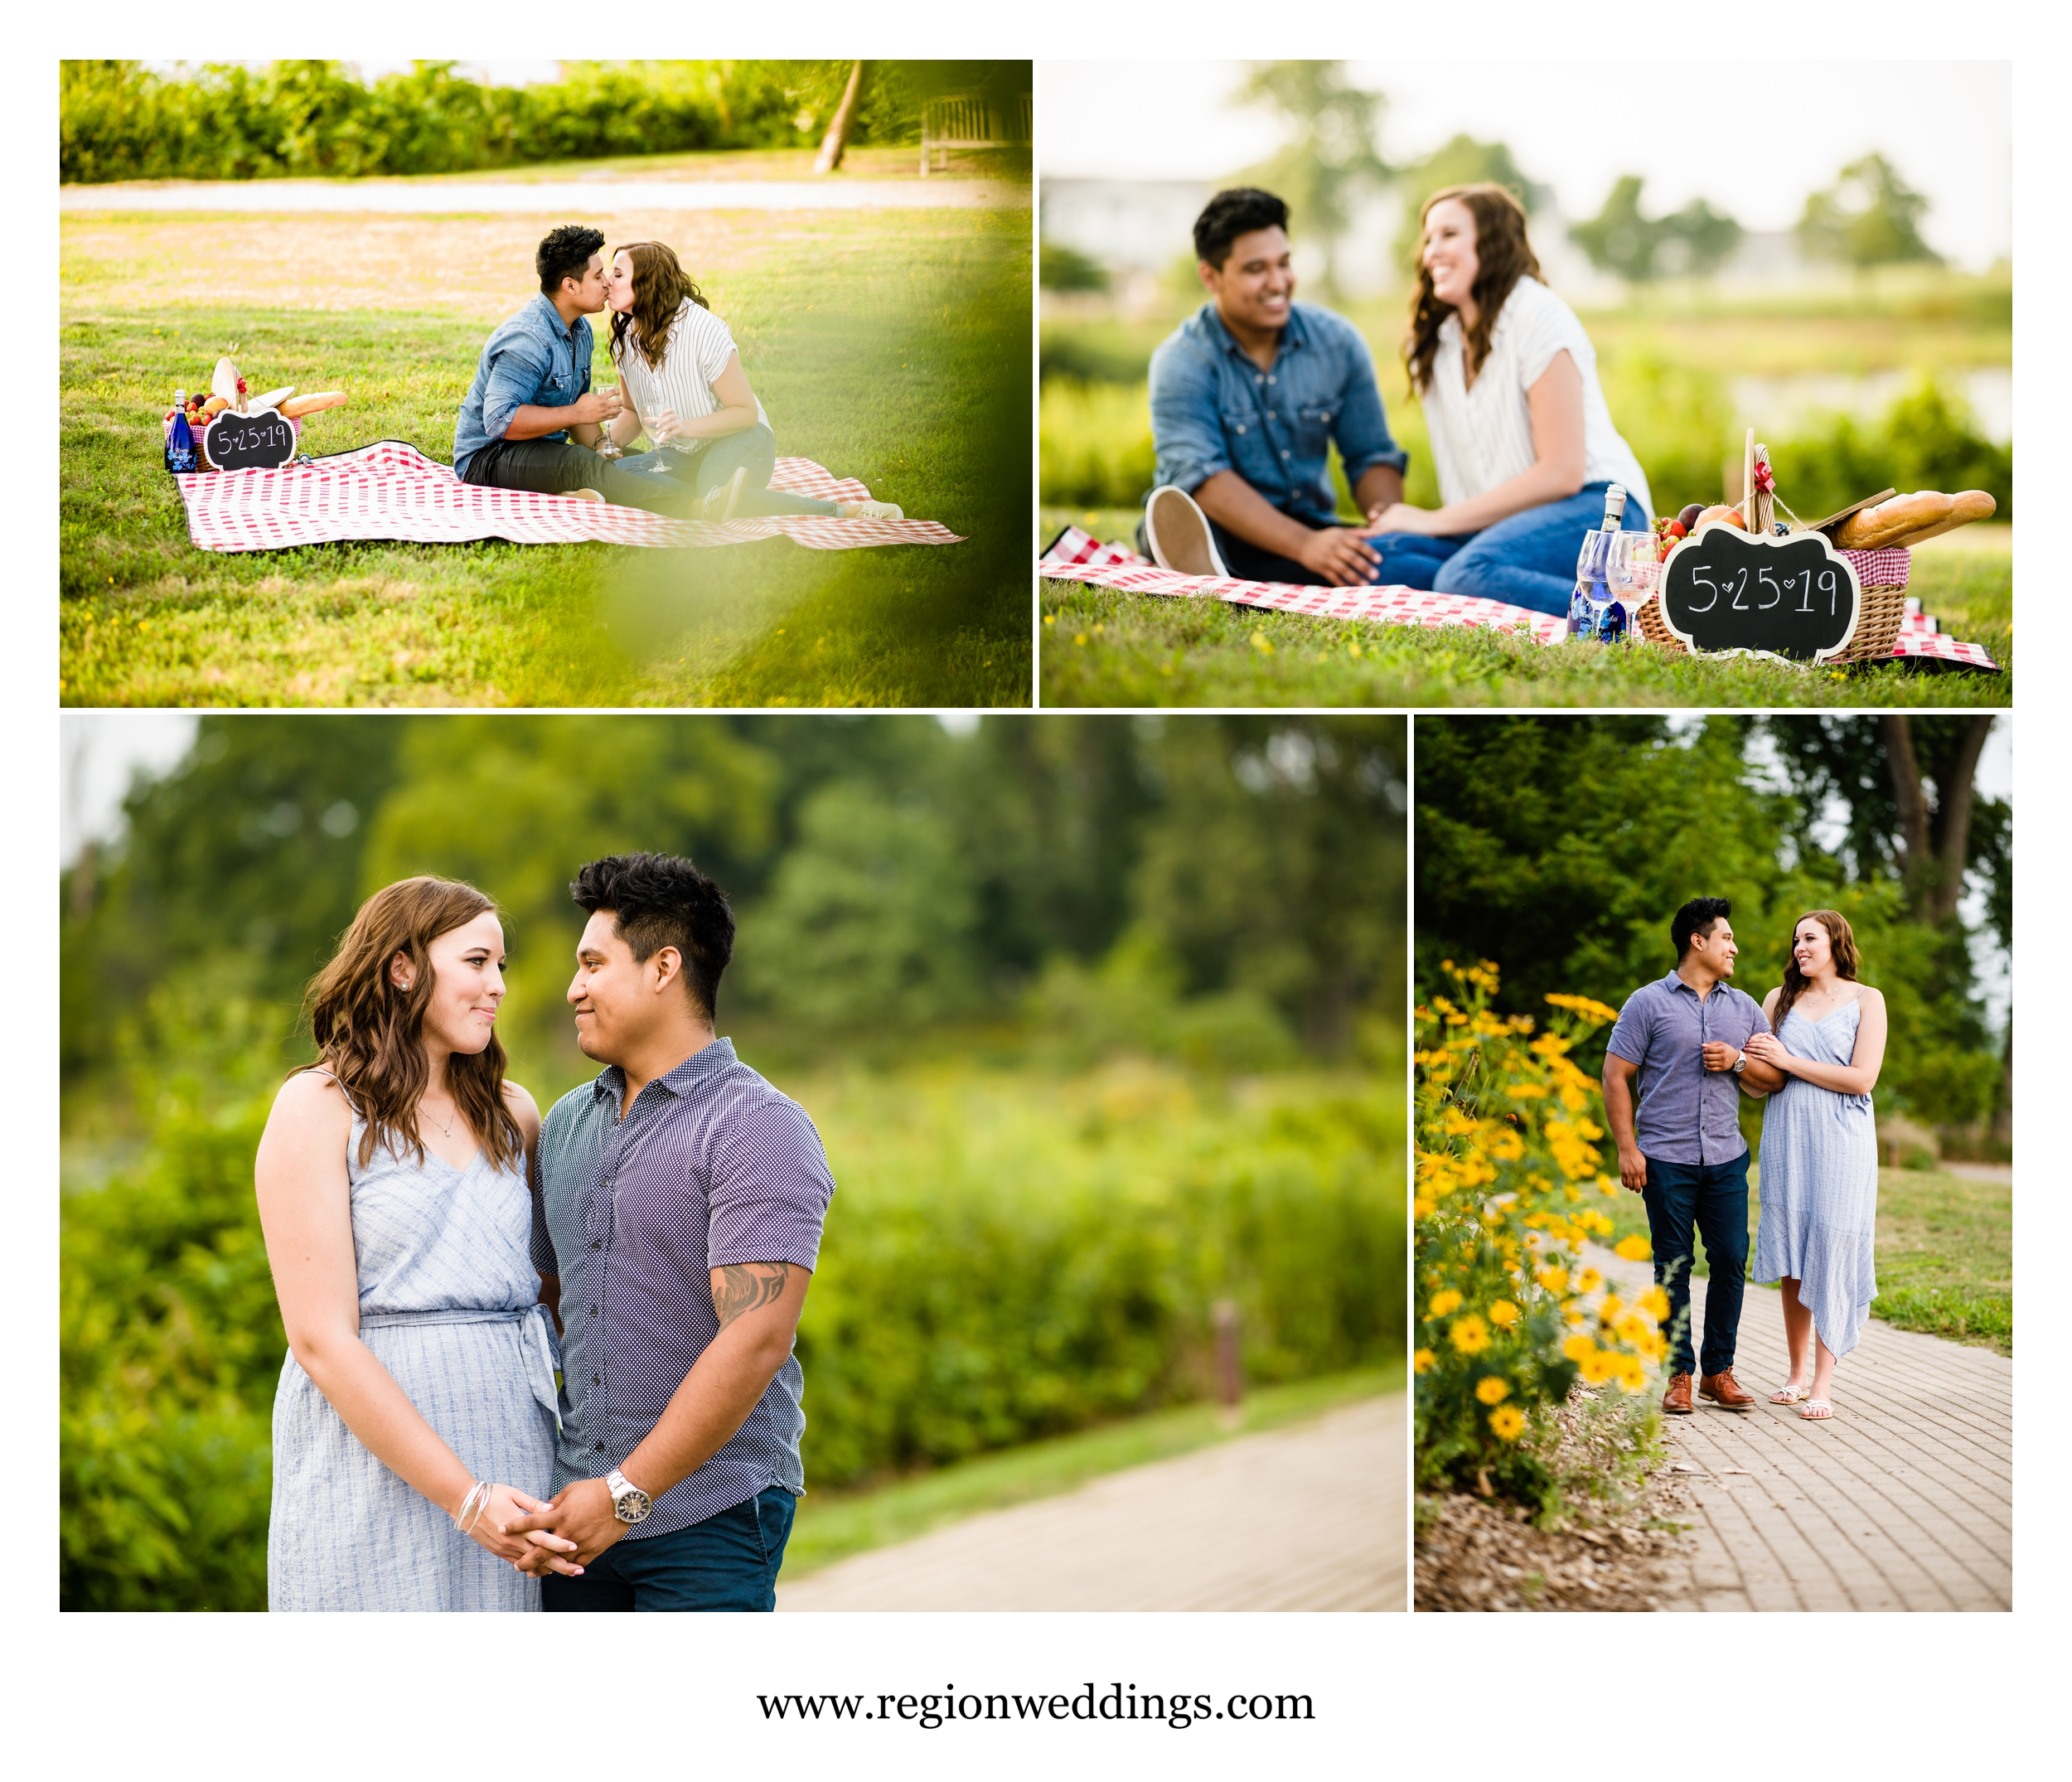 Engagement photos in Chesterton, Indiana.